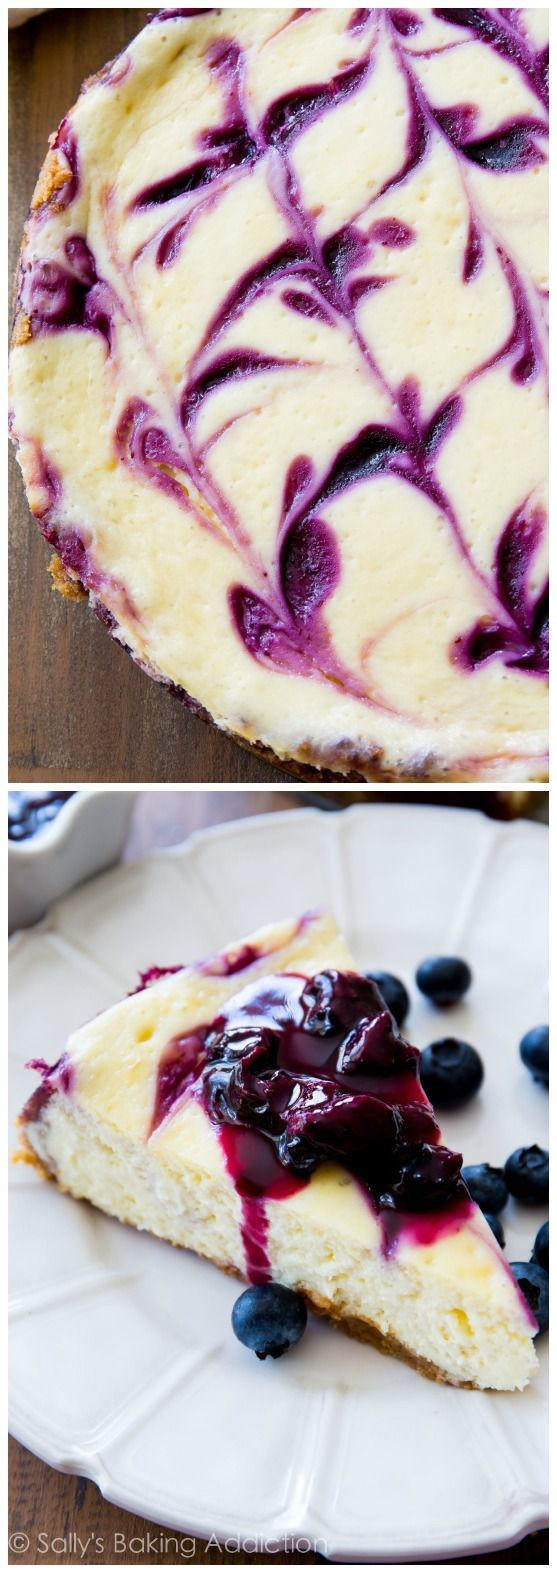 Ultra creamy homemade cheesecake swirled with a sweet blueberry swirl. All on top of my favorite buttery graham cracker crust!